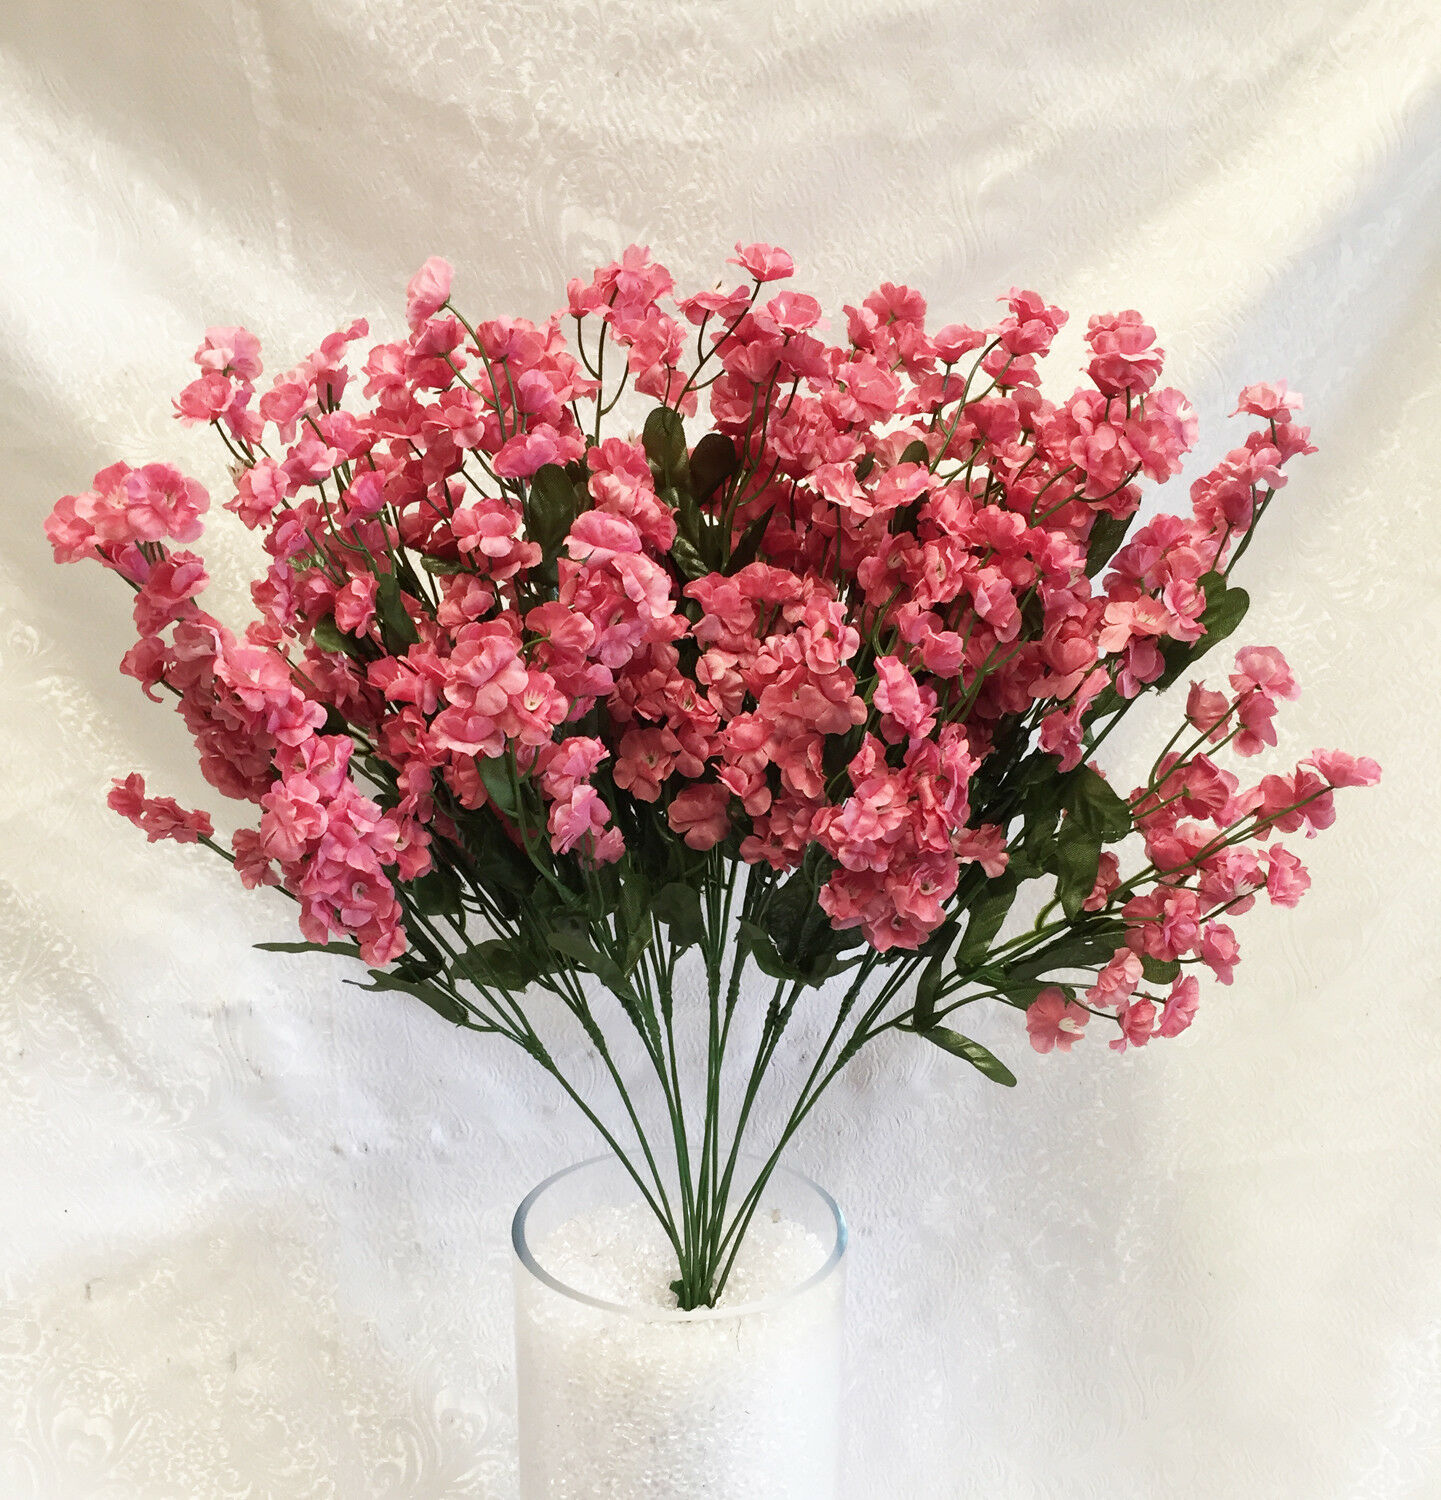 Ling S Moment French Dusty Rose Artificial Wedding Flowers Garden Dusty Rose For Sale Online Ebay